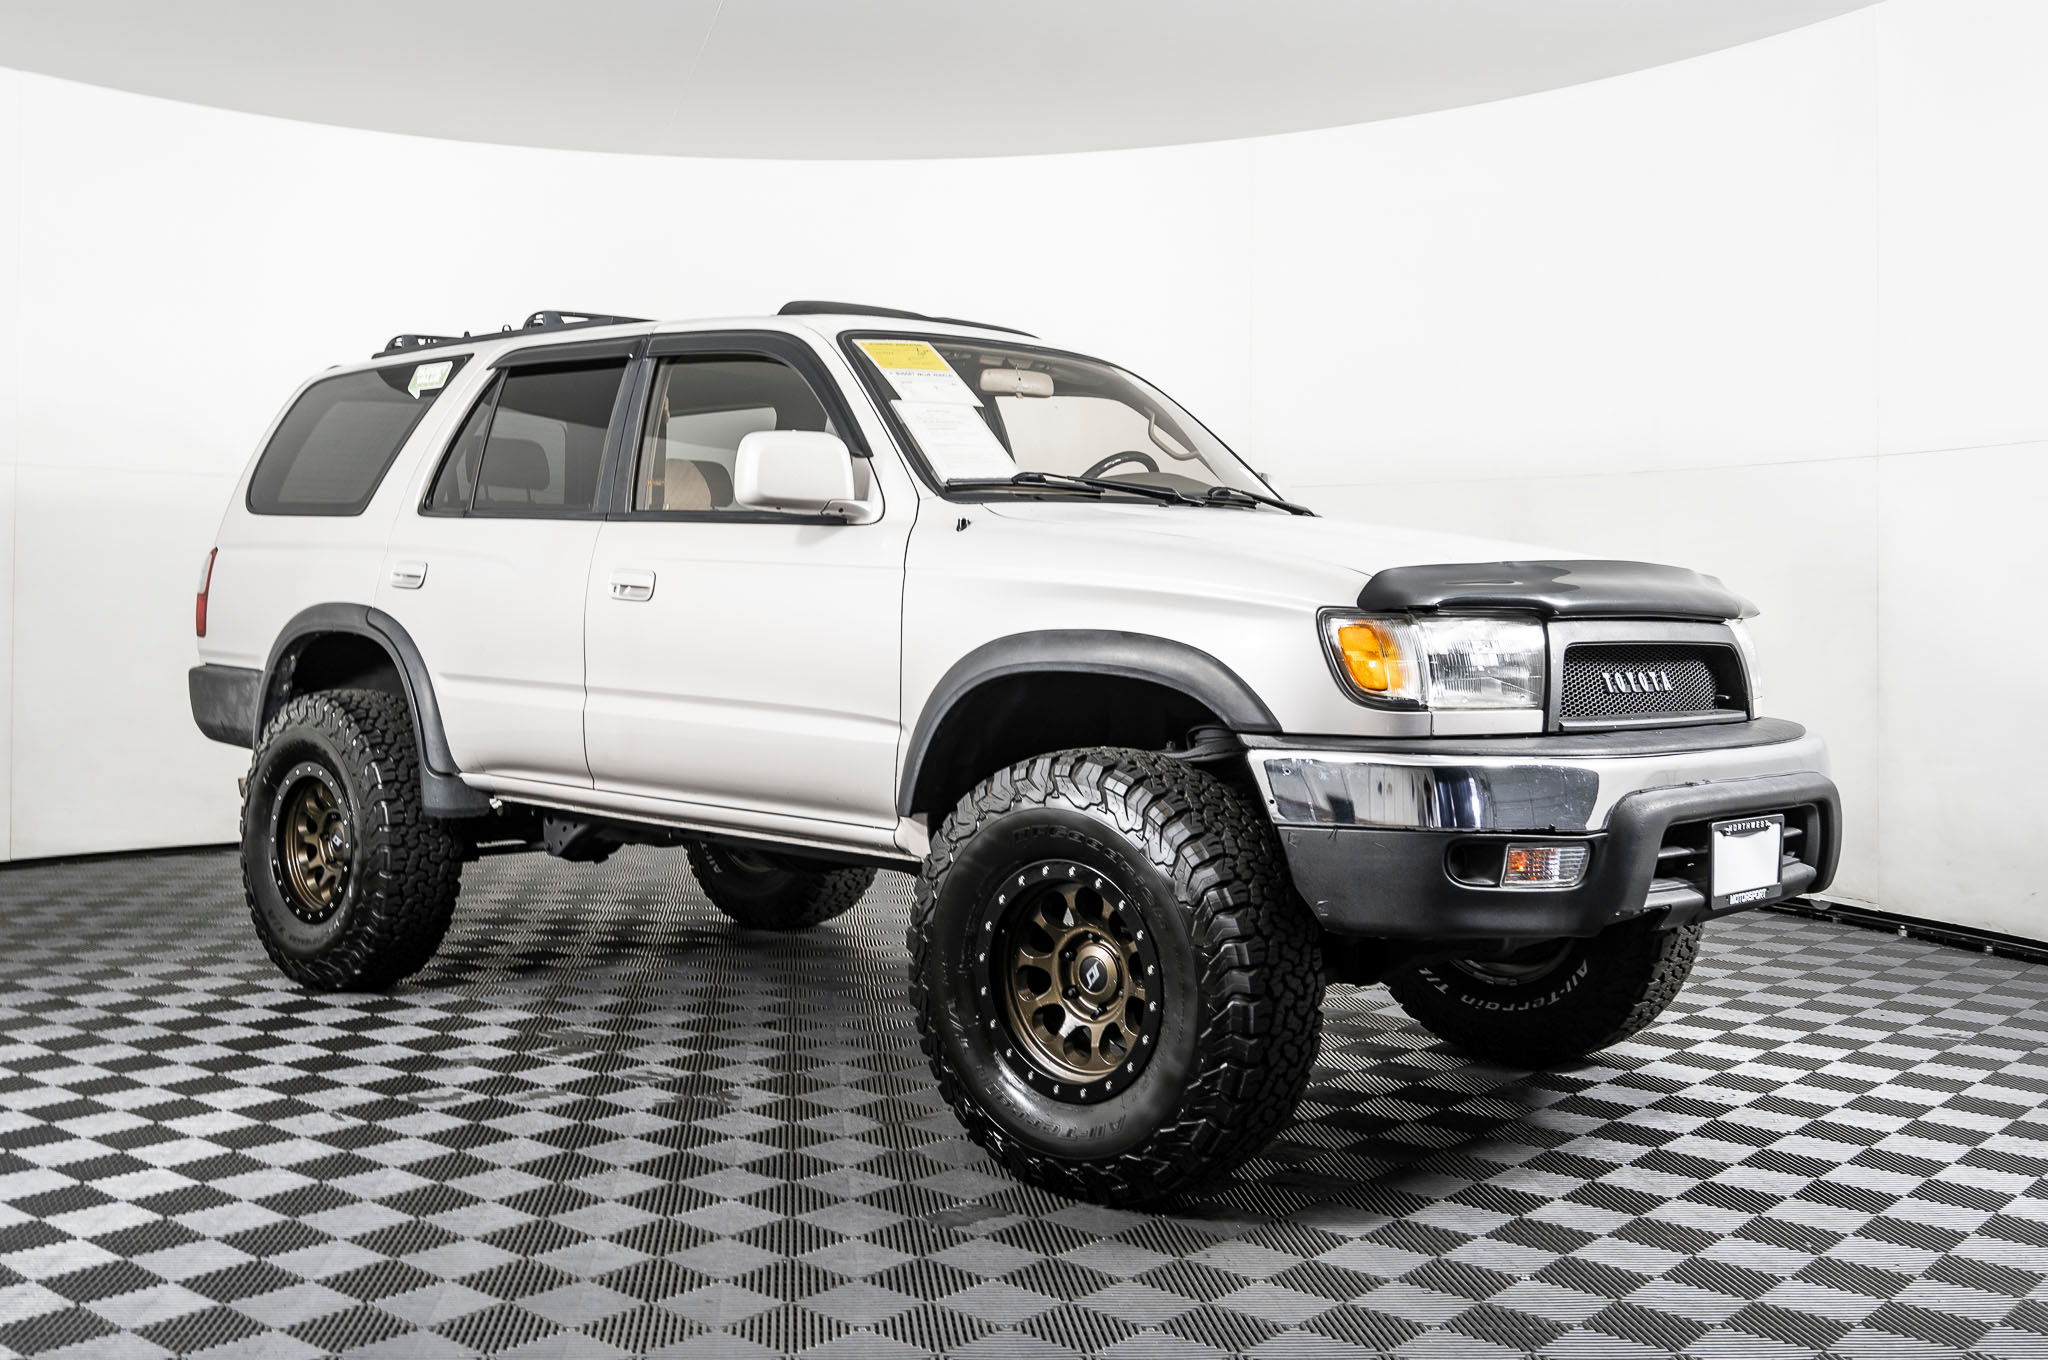 used lifted 1997 toyota 4runner sr5 4x4 suv for sale northwest motorsport lifted 1997 toyota 4runner sr5 4x4 suv